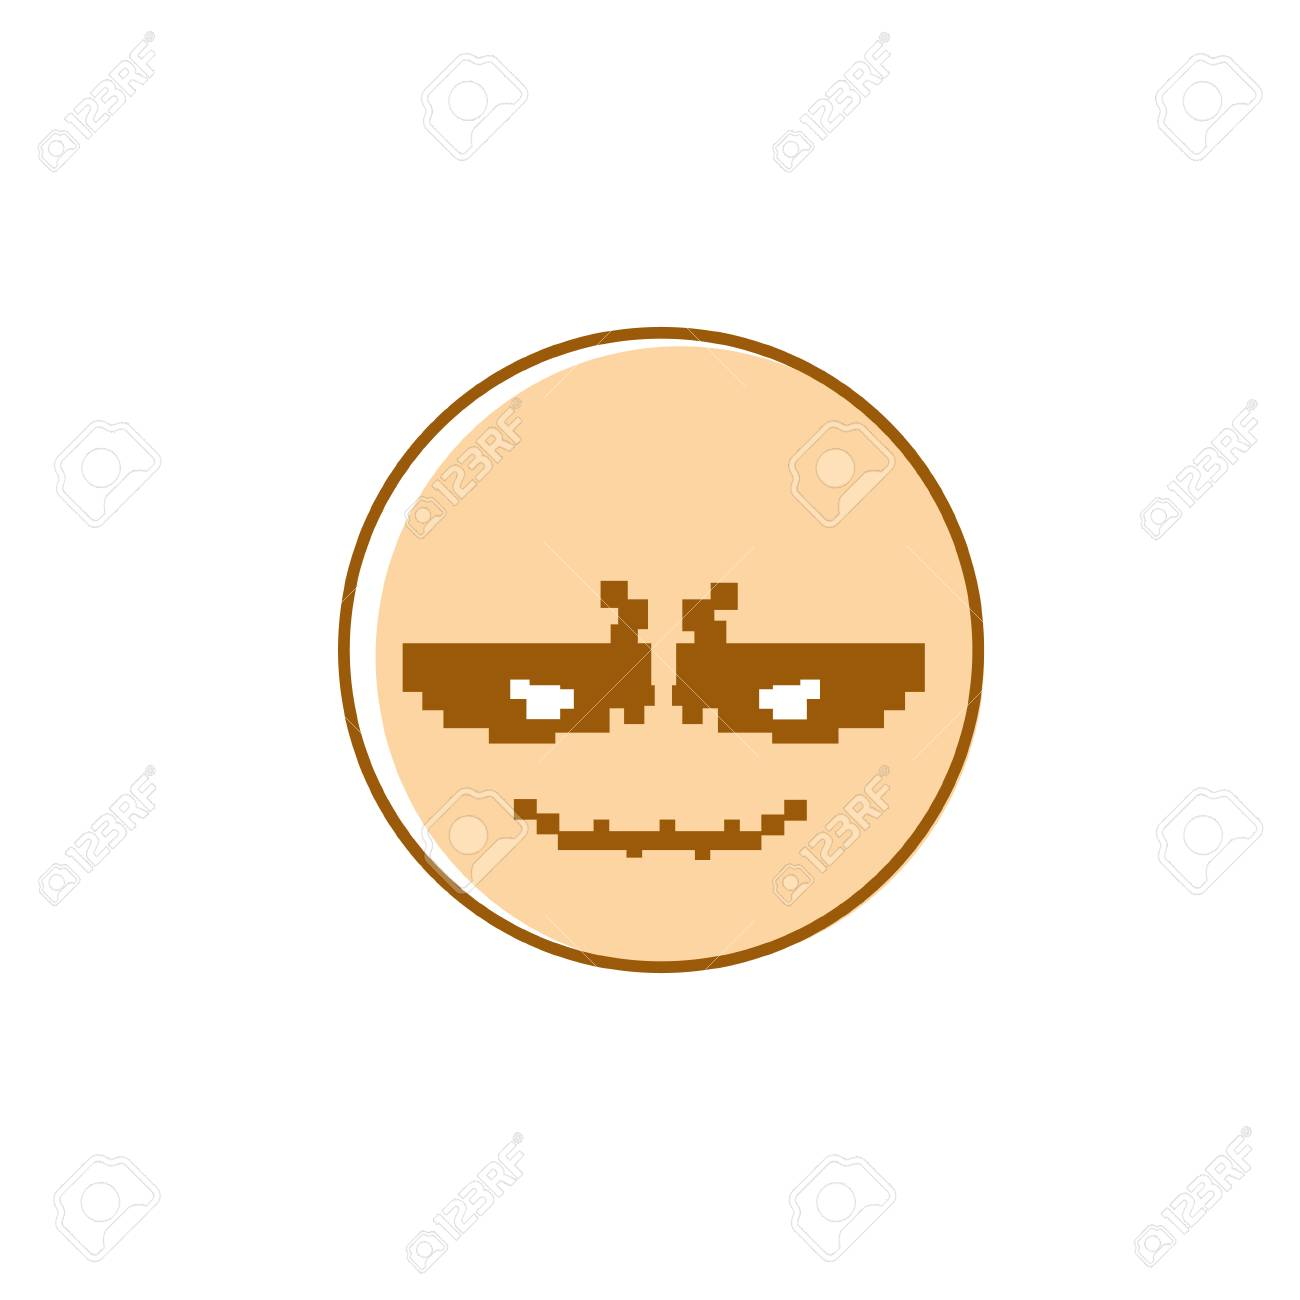 hight resolution of smiling cartoon face positive people emotion icon vector illustration stock vector 79721220